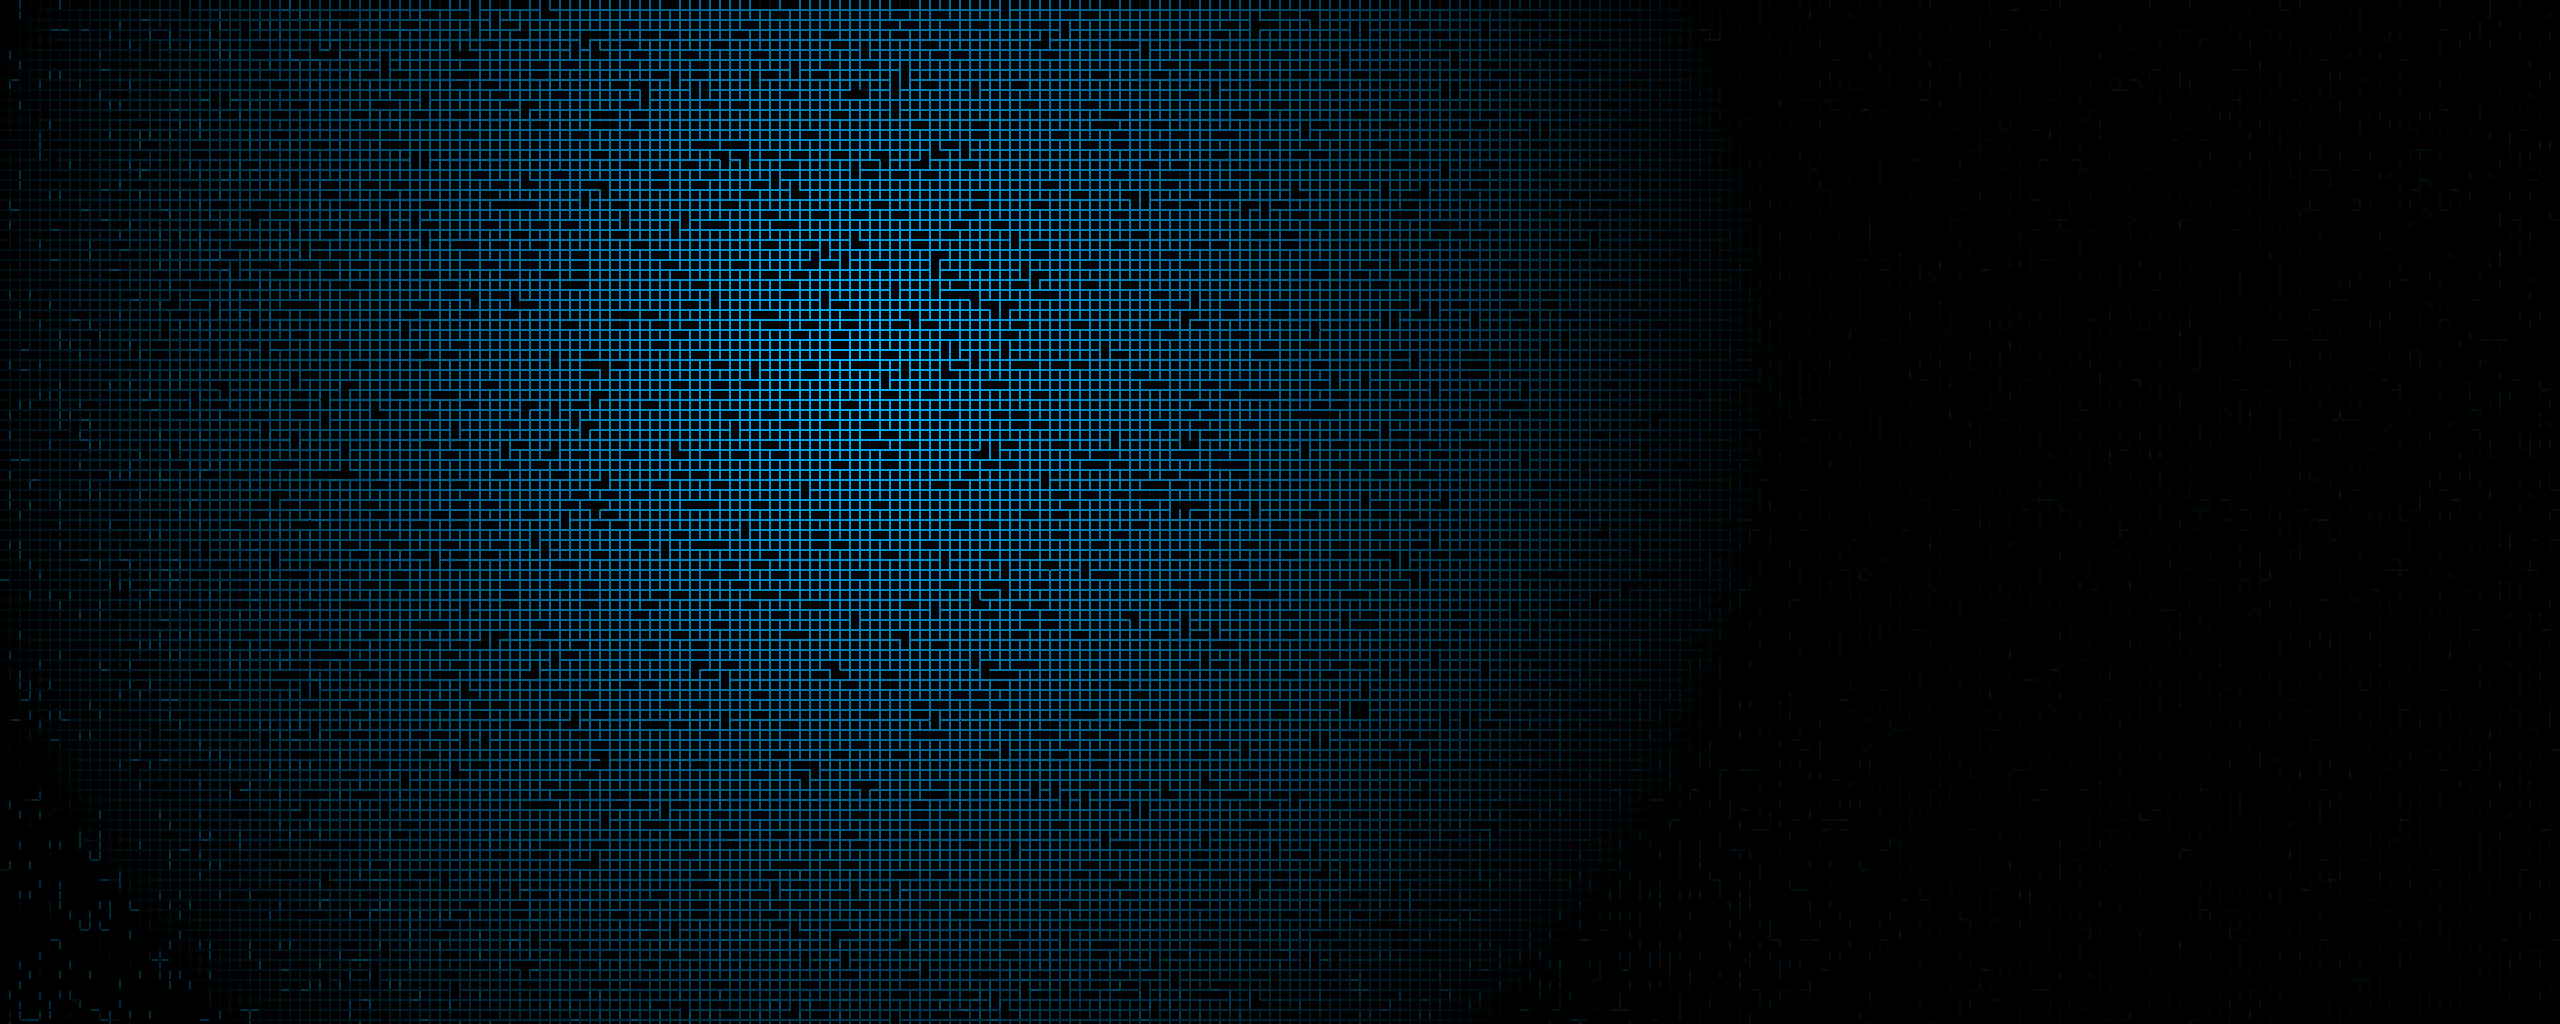 Wallpaper Black Blue